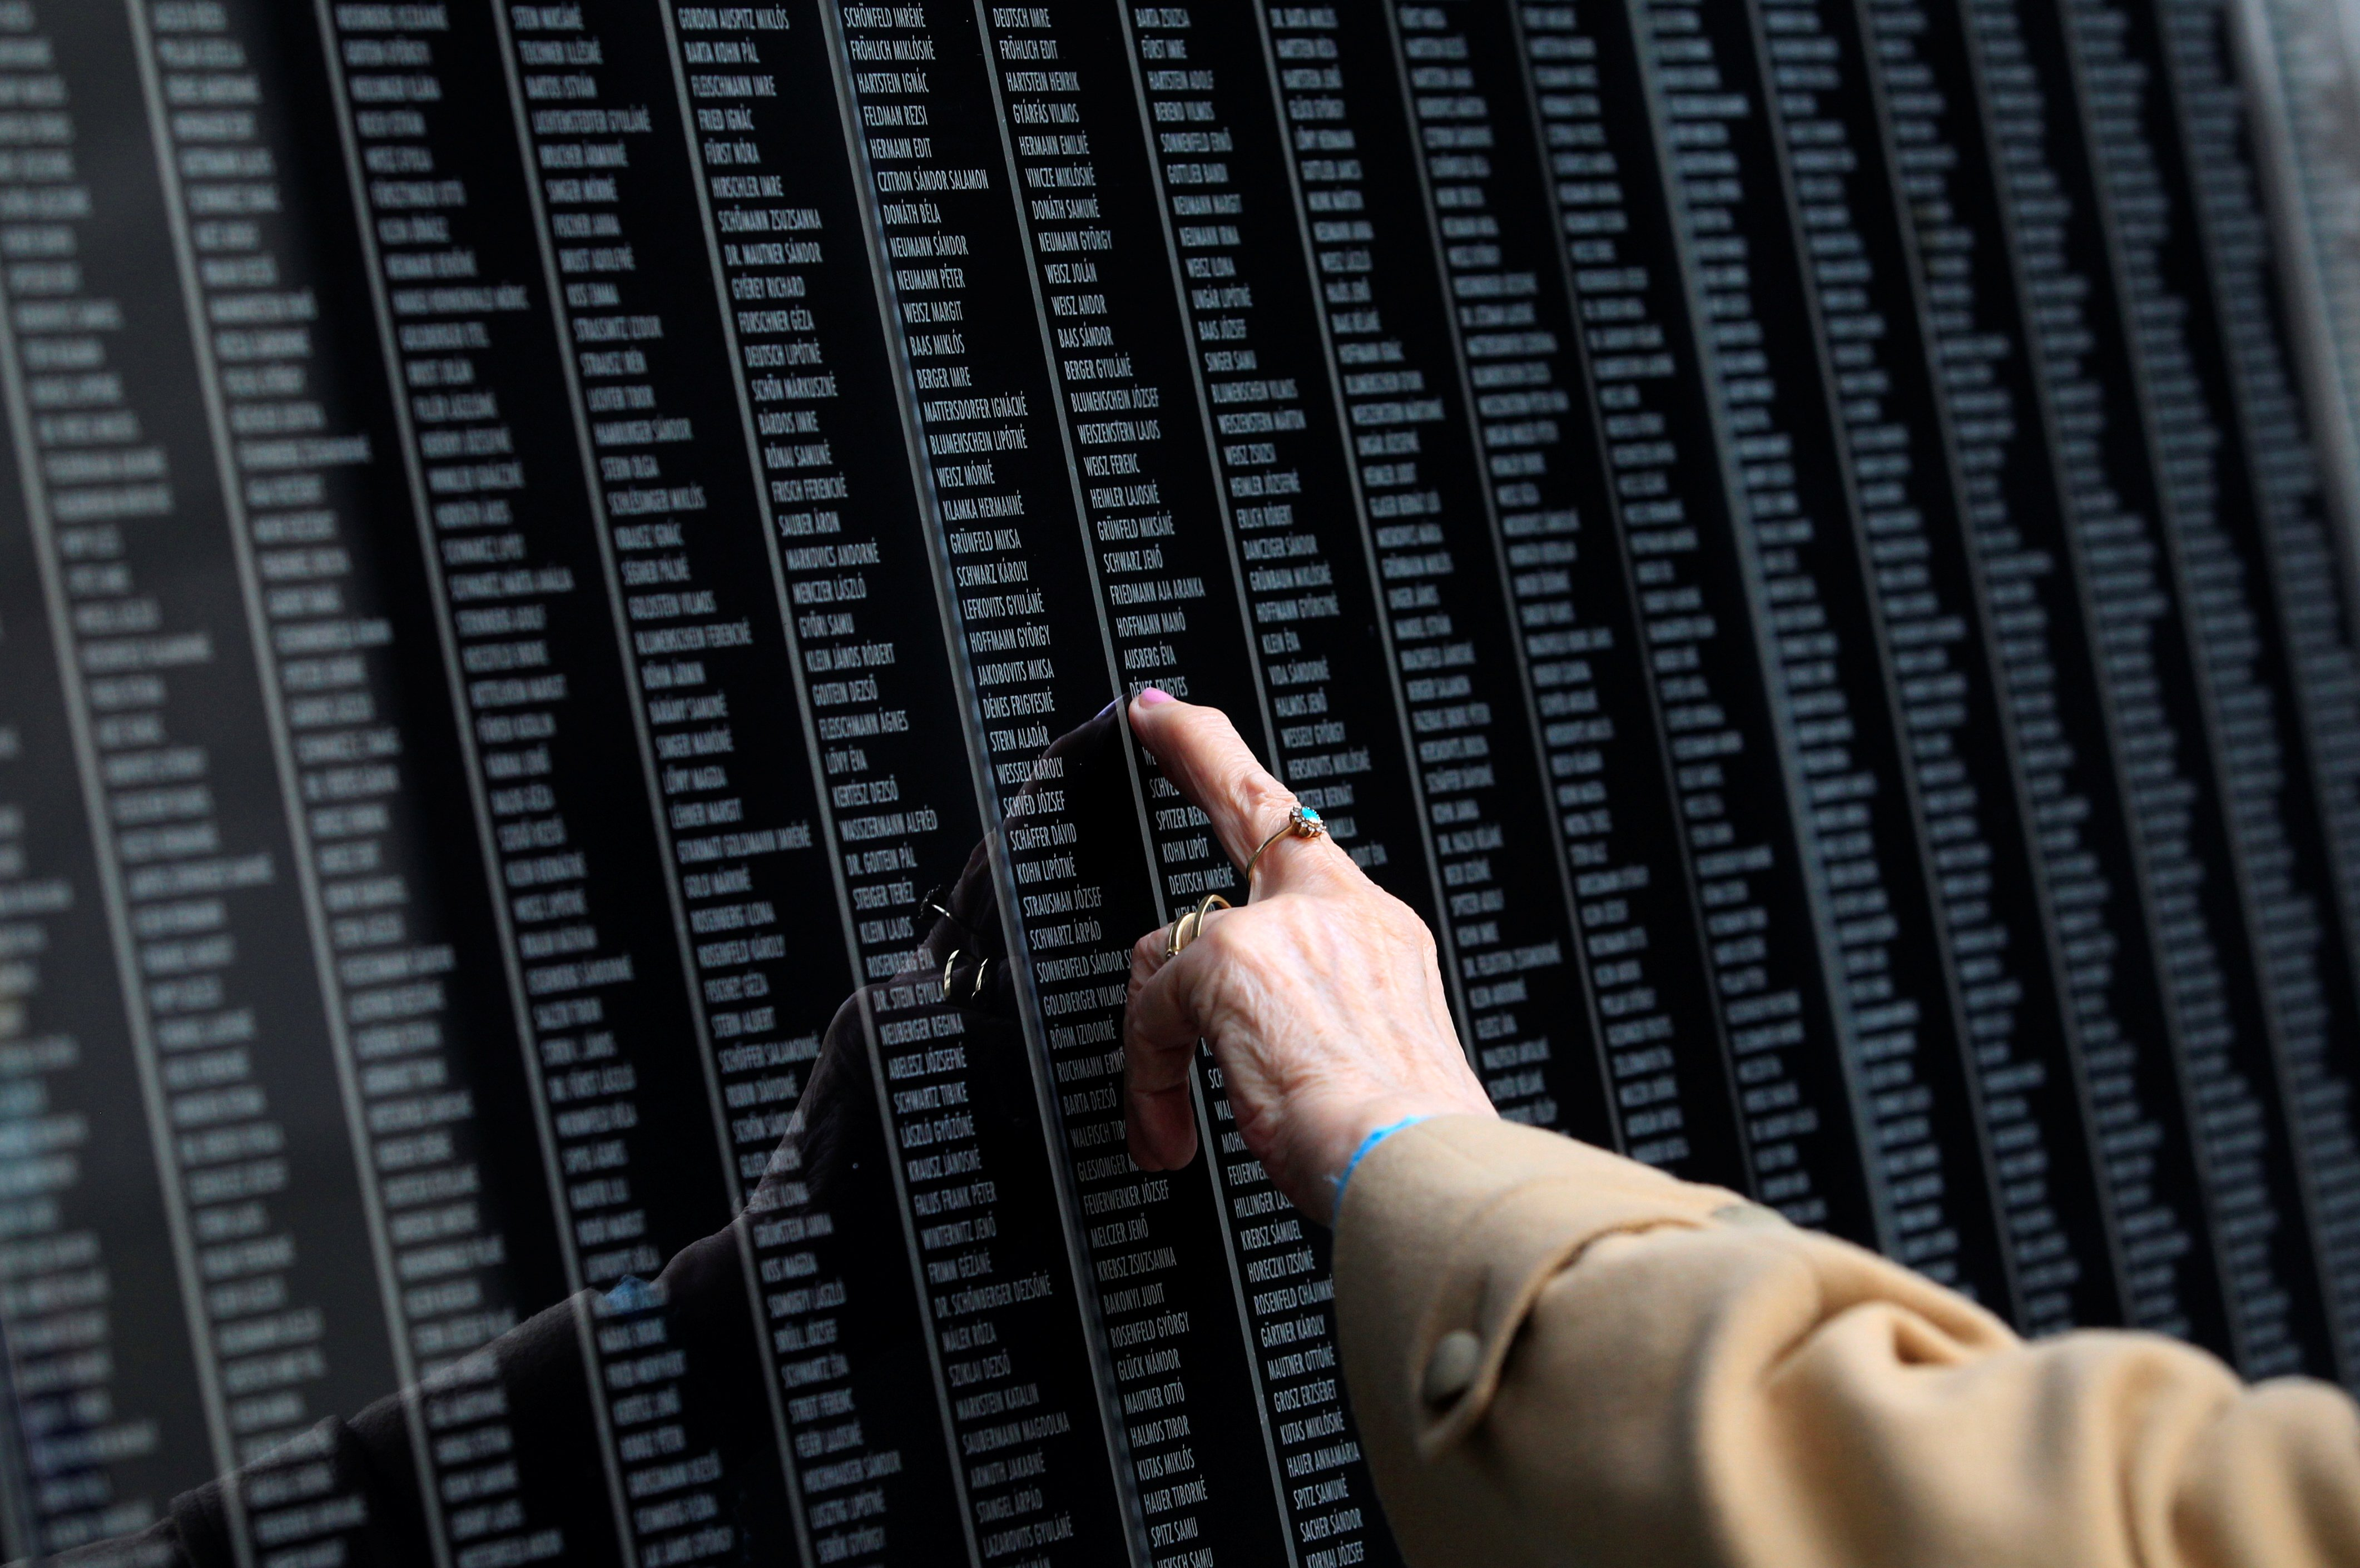 A woman touches a wall bearing the names of victims, during the Holocaust memorial day at Holocaust Memorial Centre in Budapest, Hungary April 16, 2018. REUTERS/Bernadett Szabo